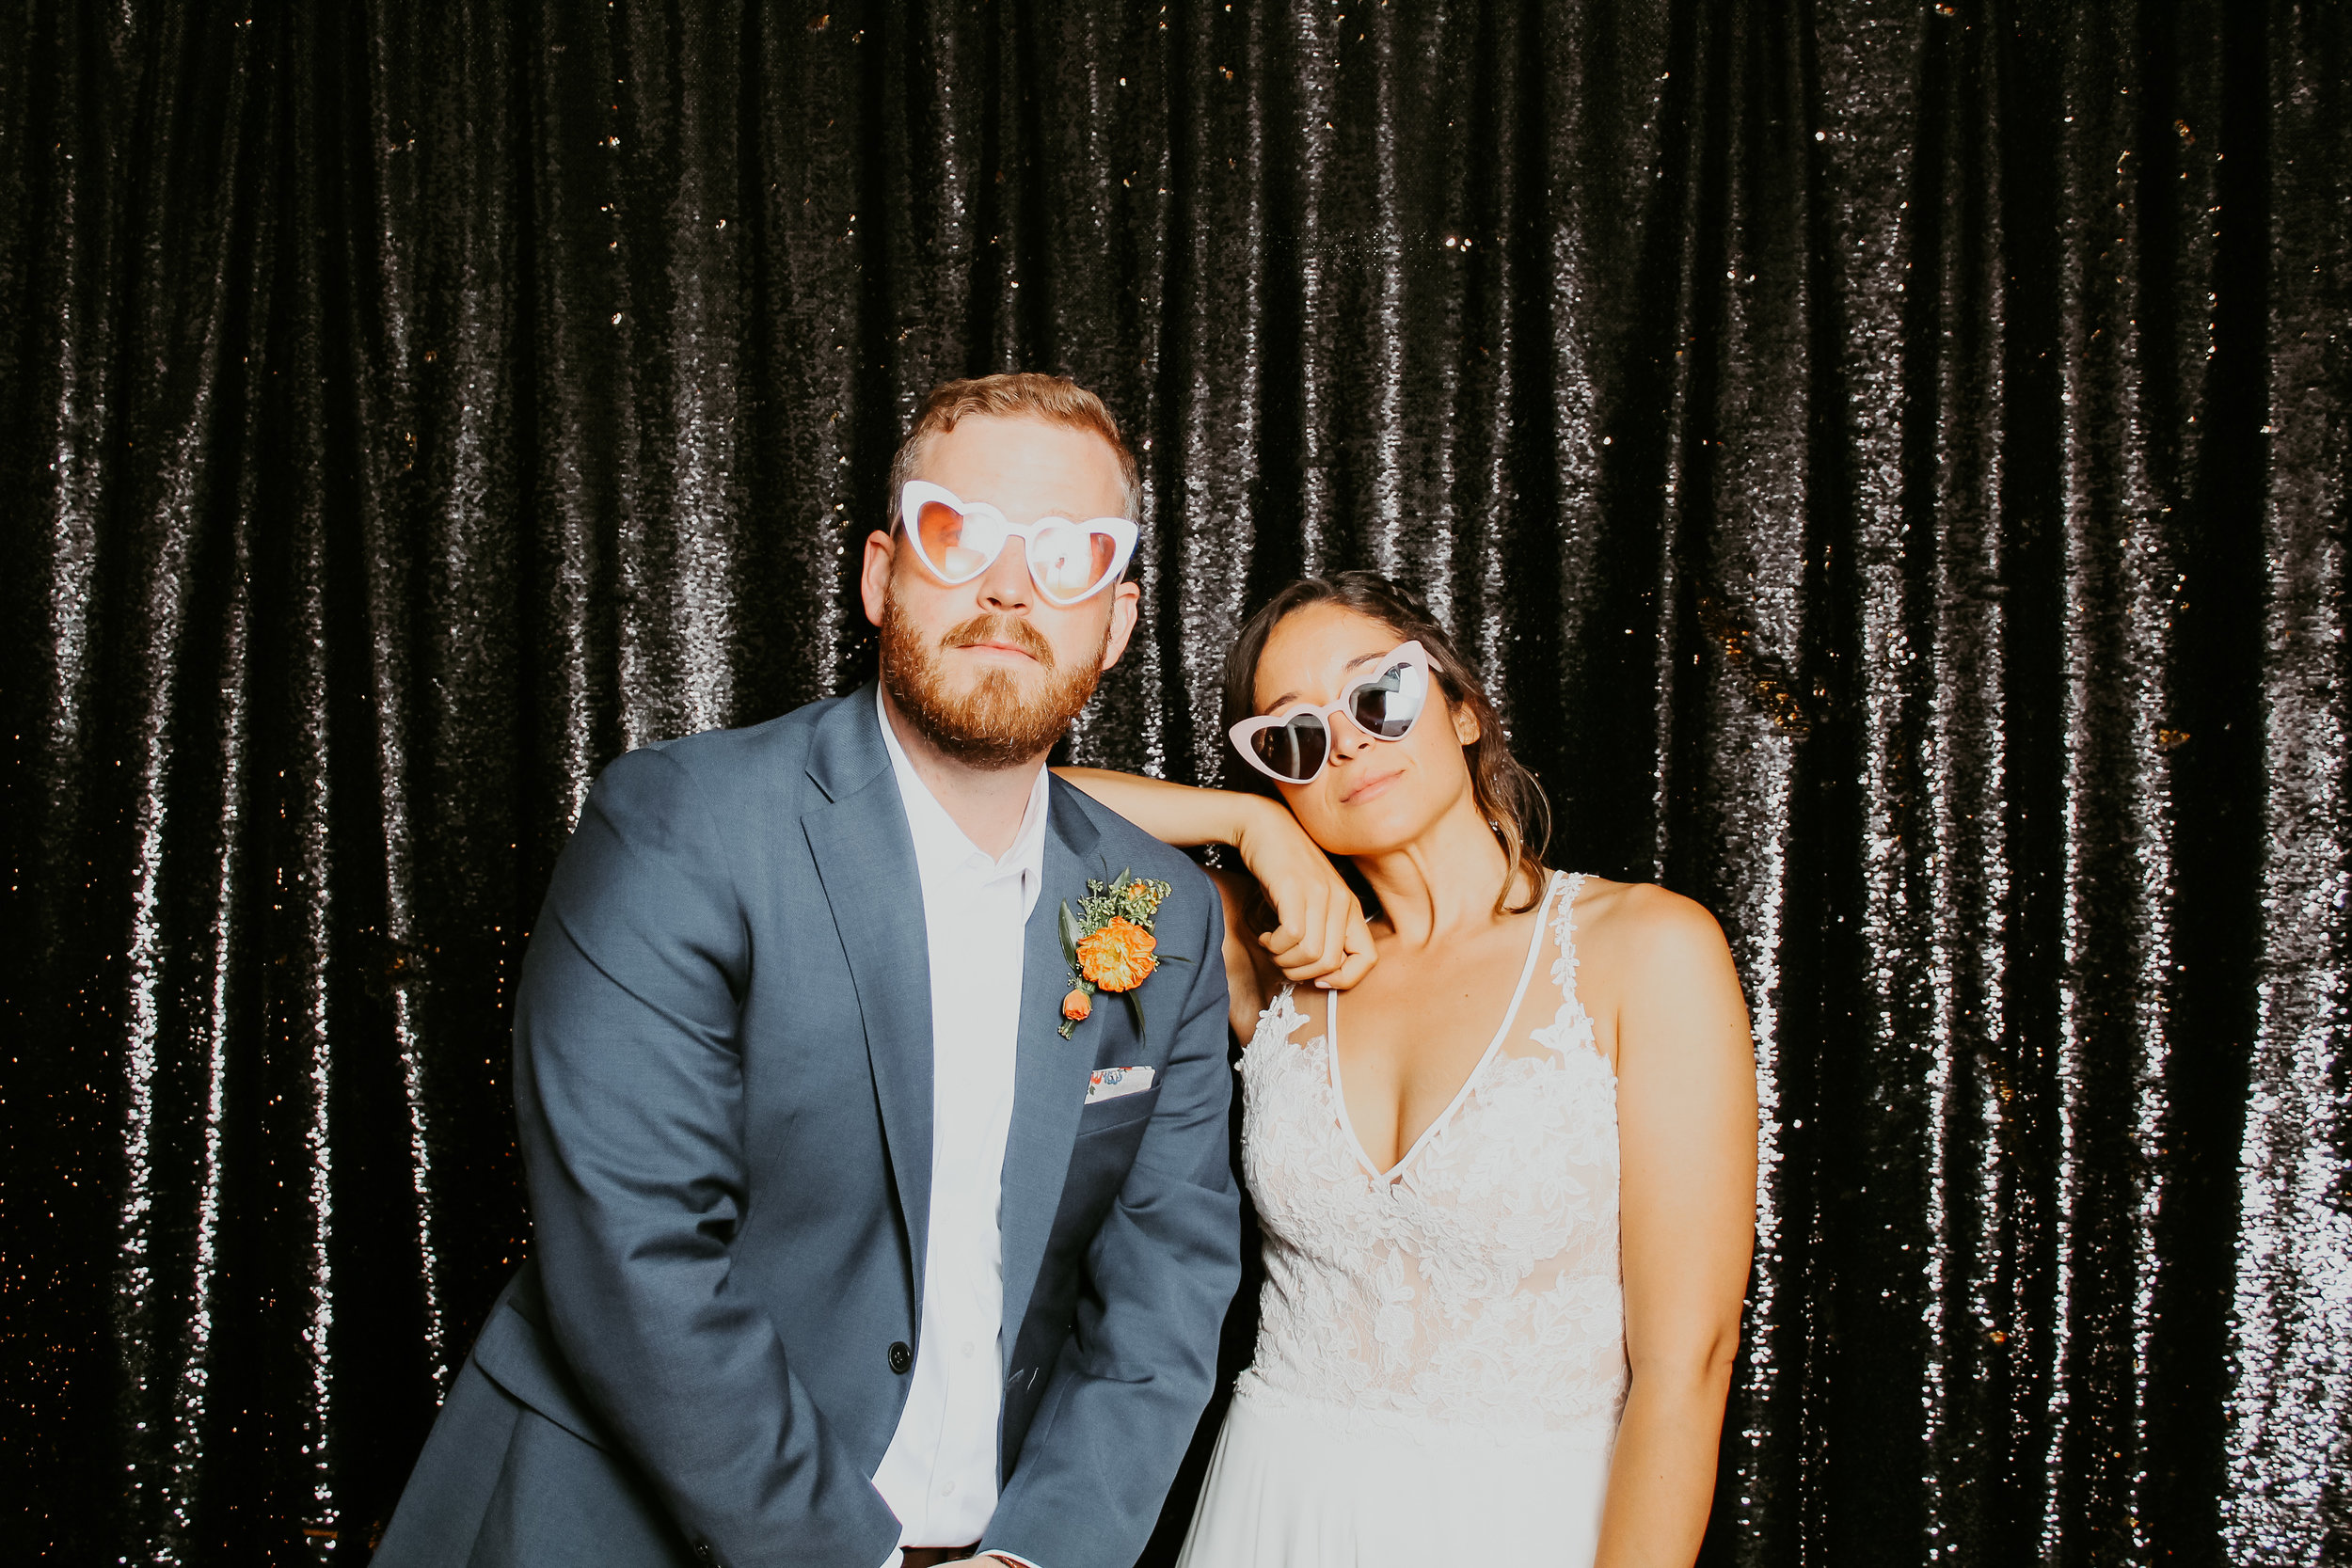 OC Wedding Photobooth